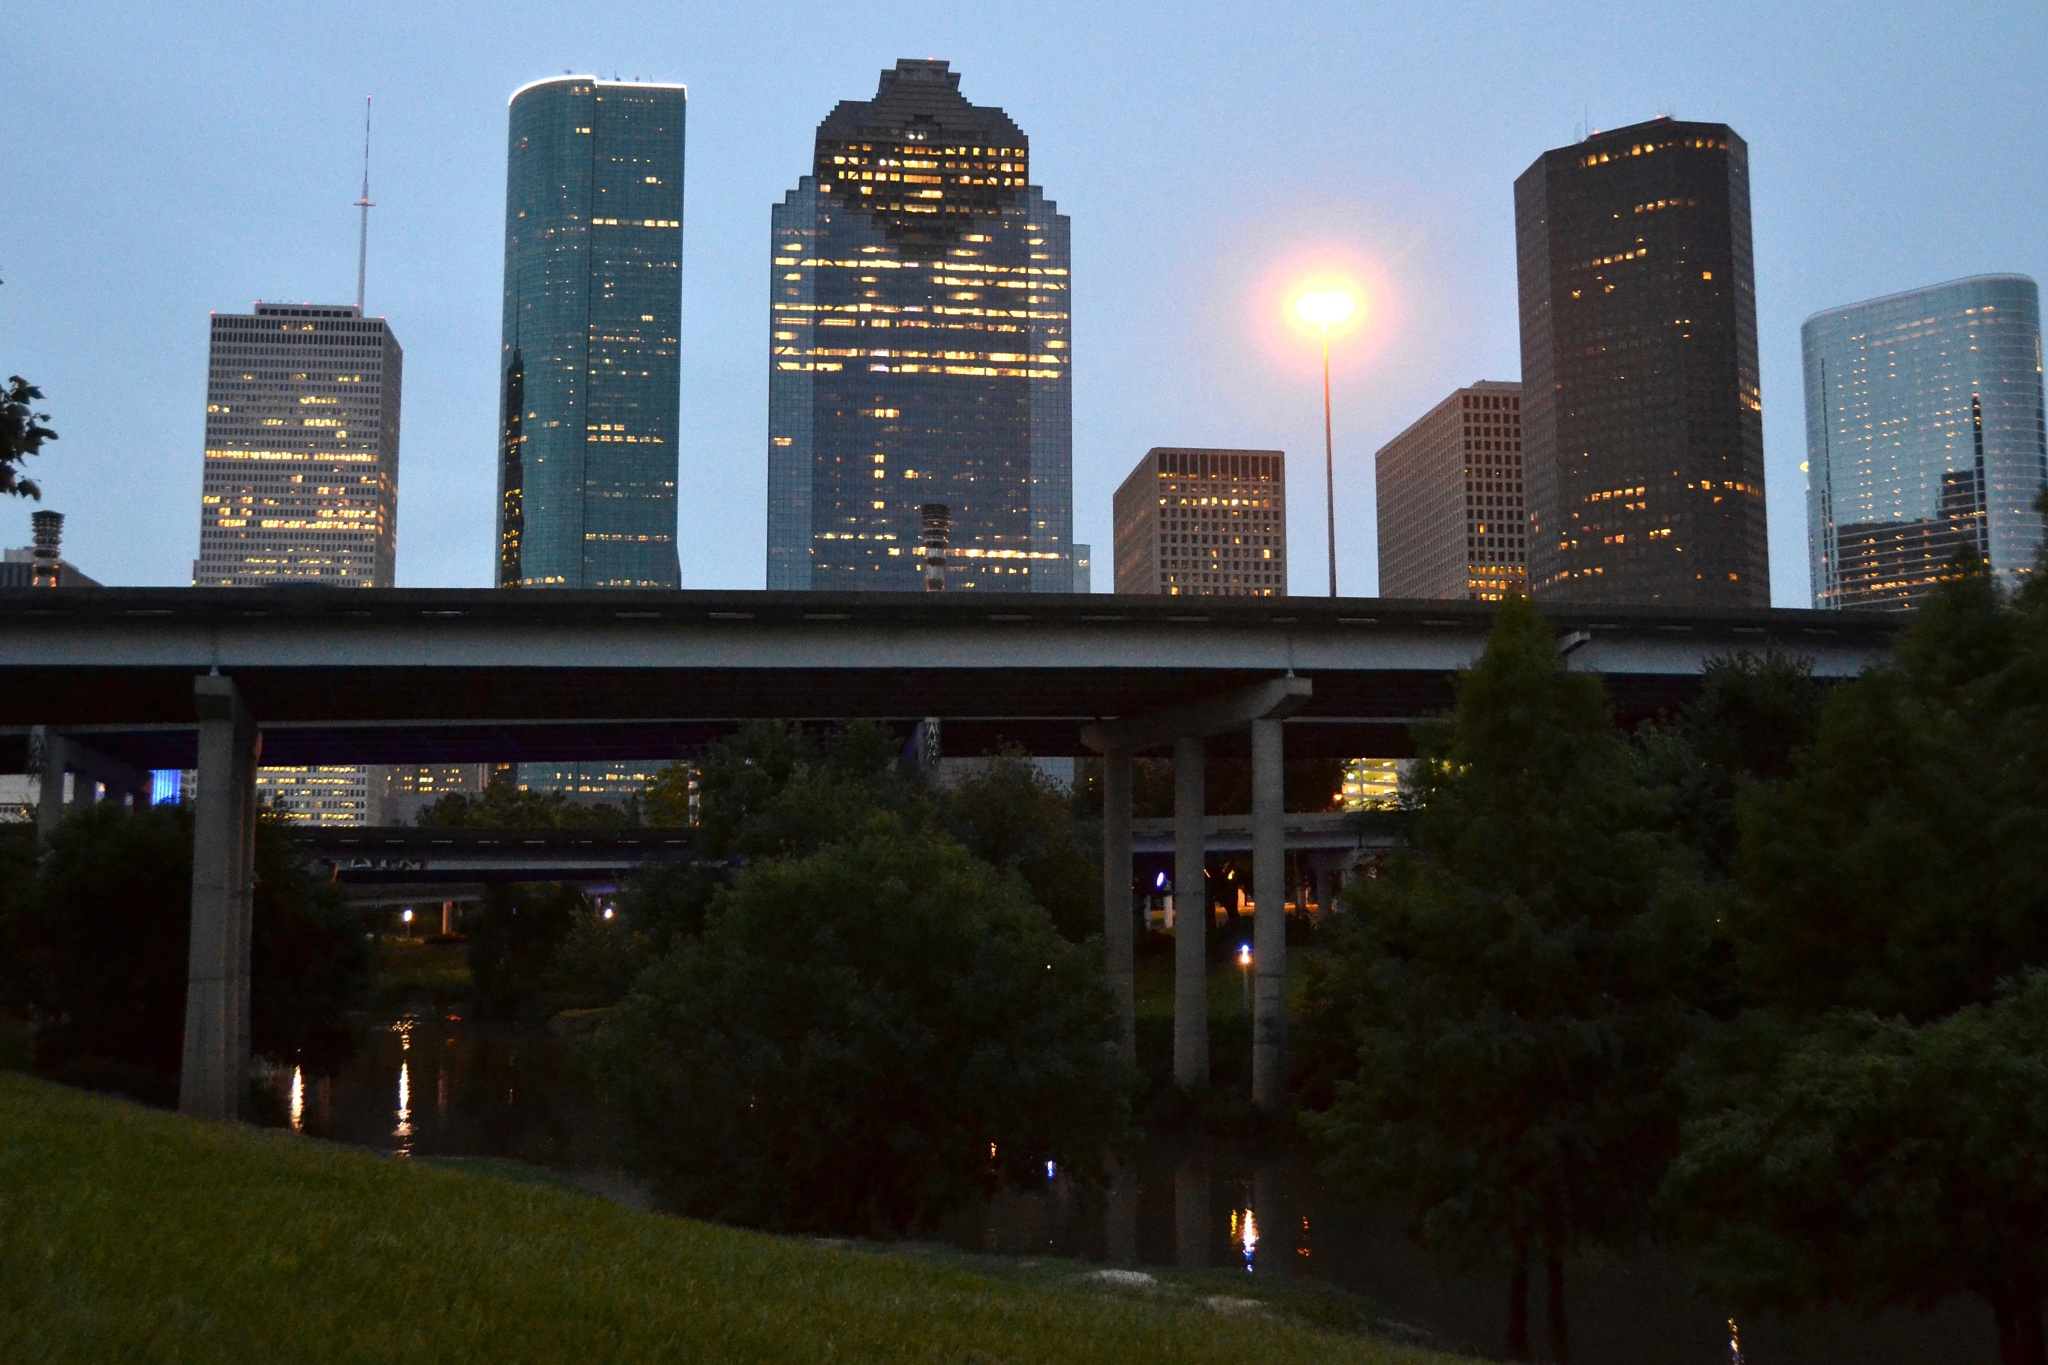 Houston, Texas at sunset by Alma